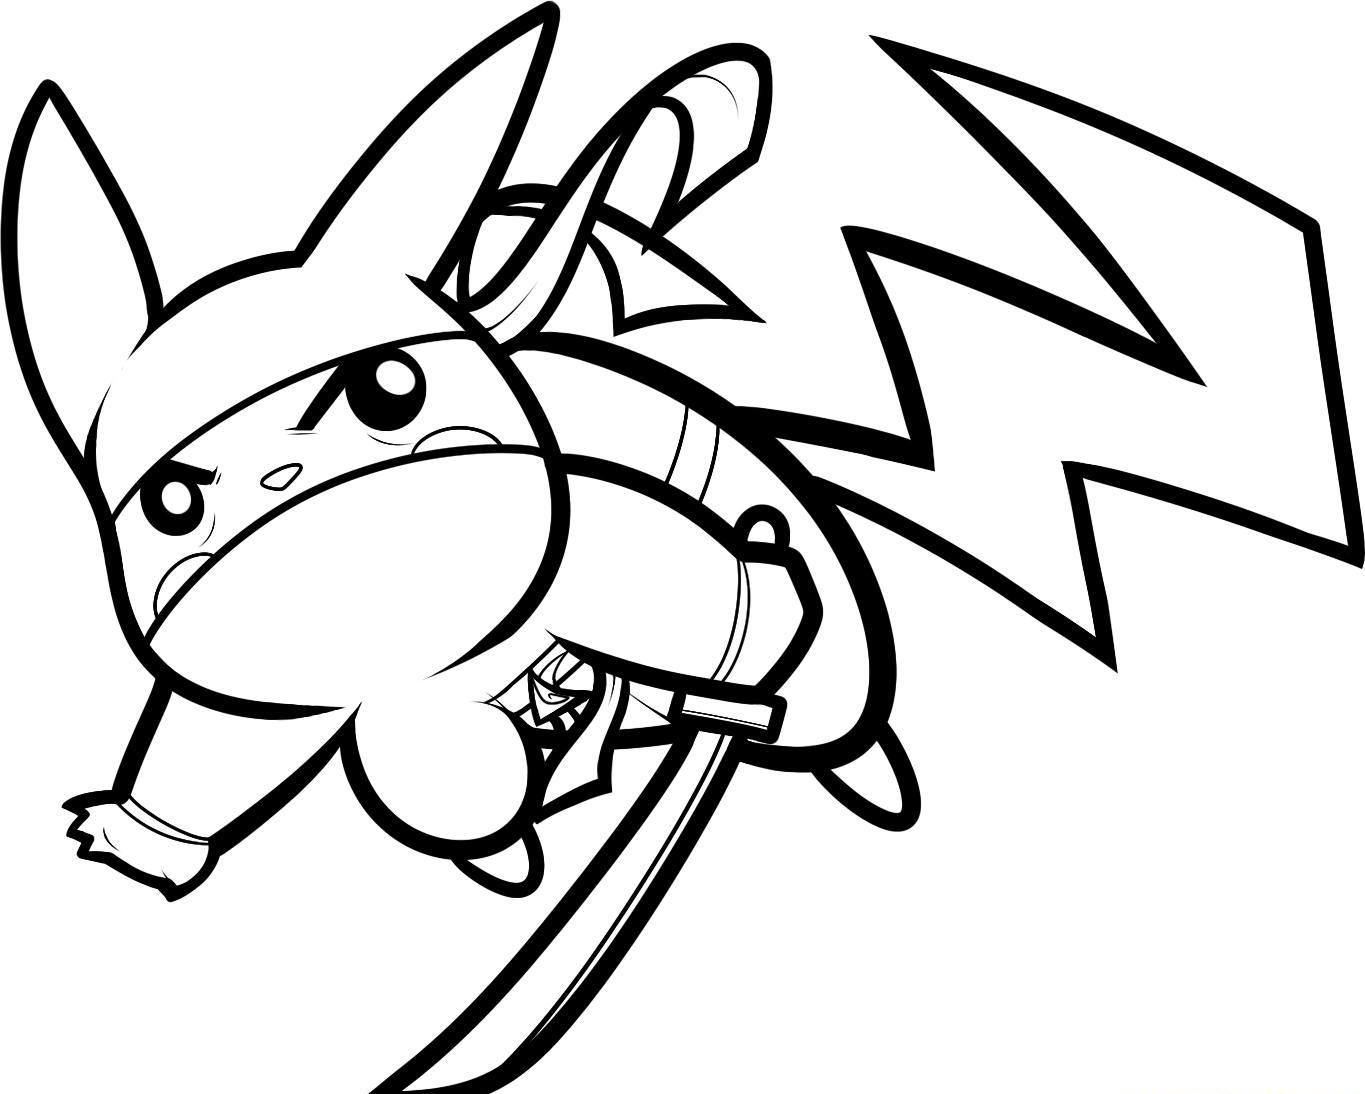 Ninja Pikachu Coloring Page | kids color pages | Pinterest